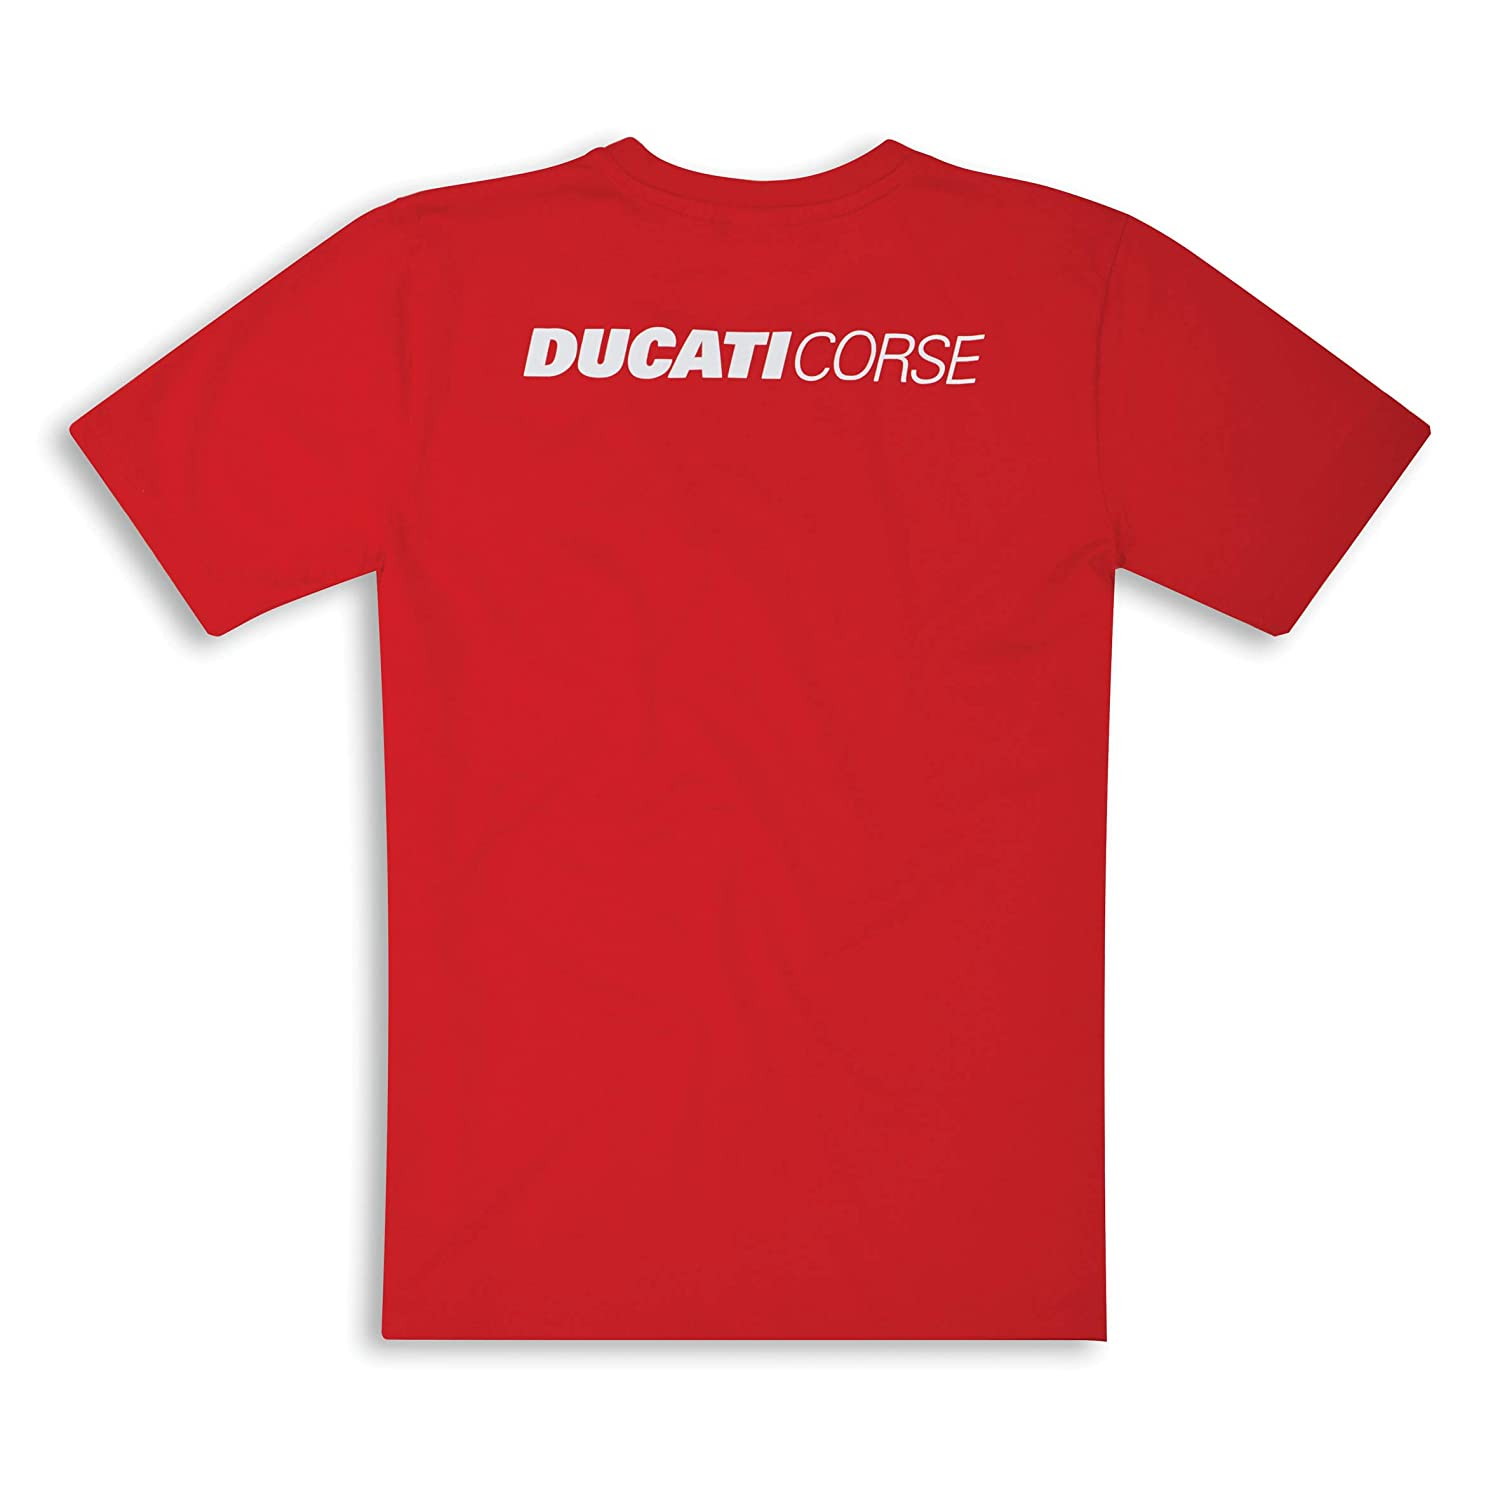 Ducati Corse DC 19 Graphic Net Short Sleeved T-Shirt